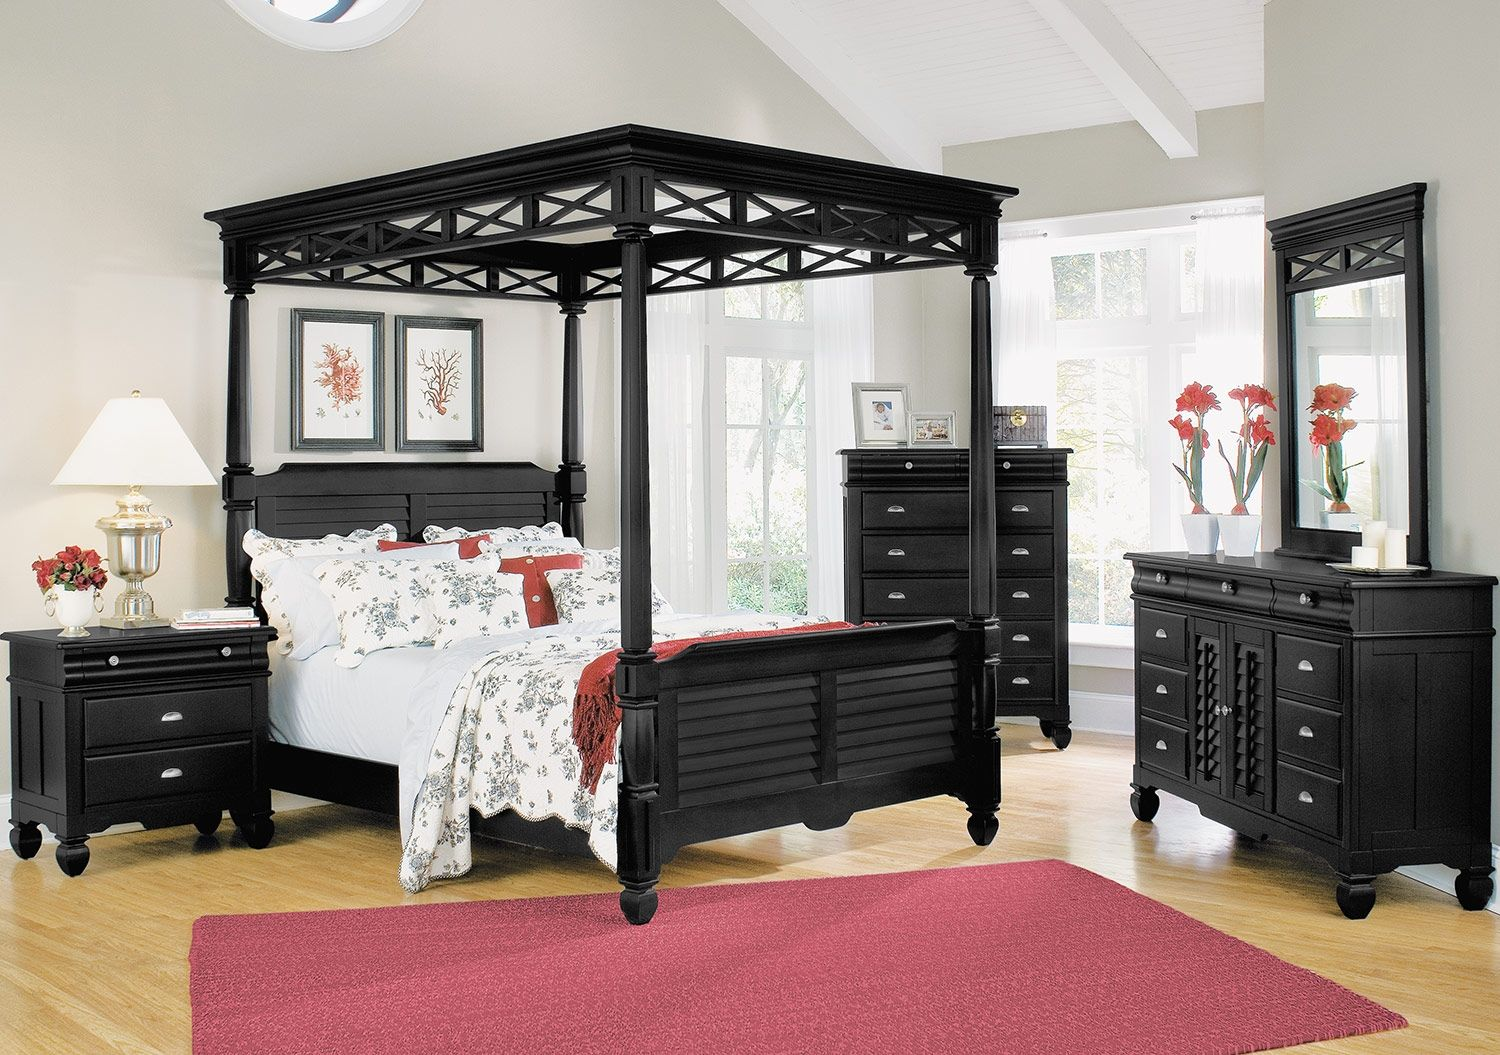 canopy black beds black bedroom furniture dark furniture queen bedroom